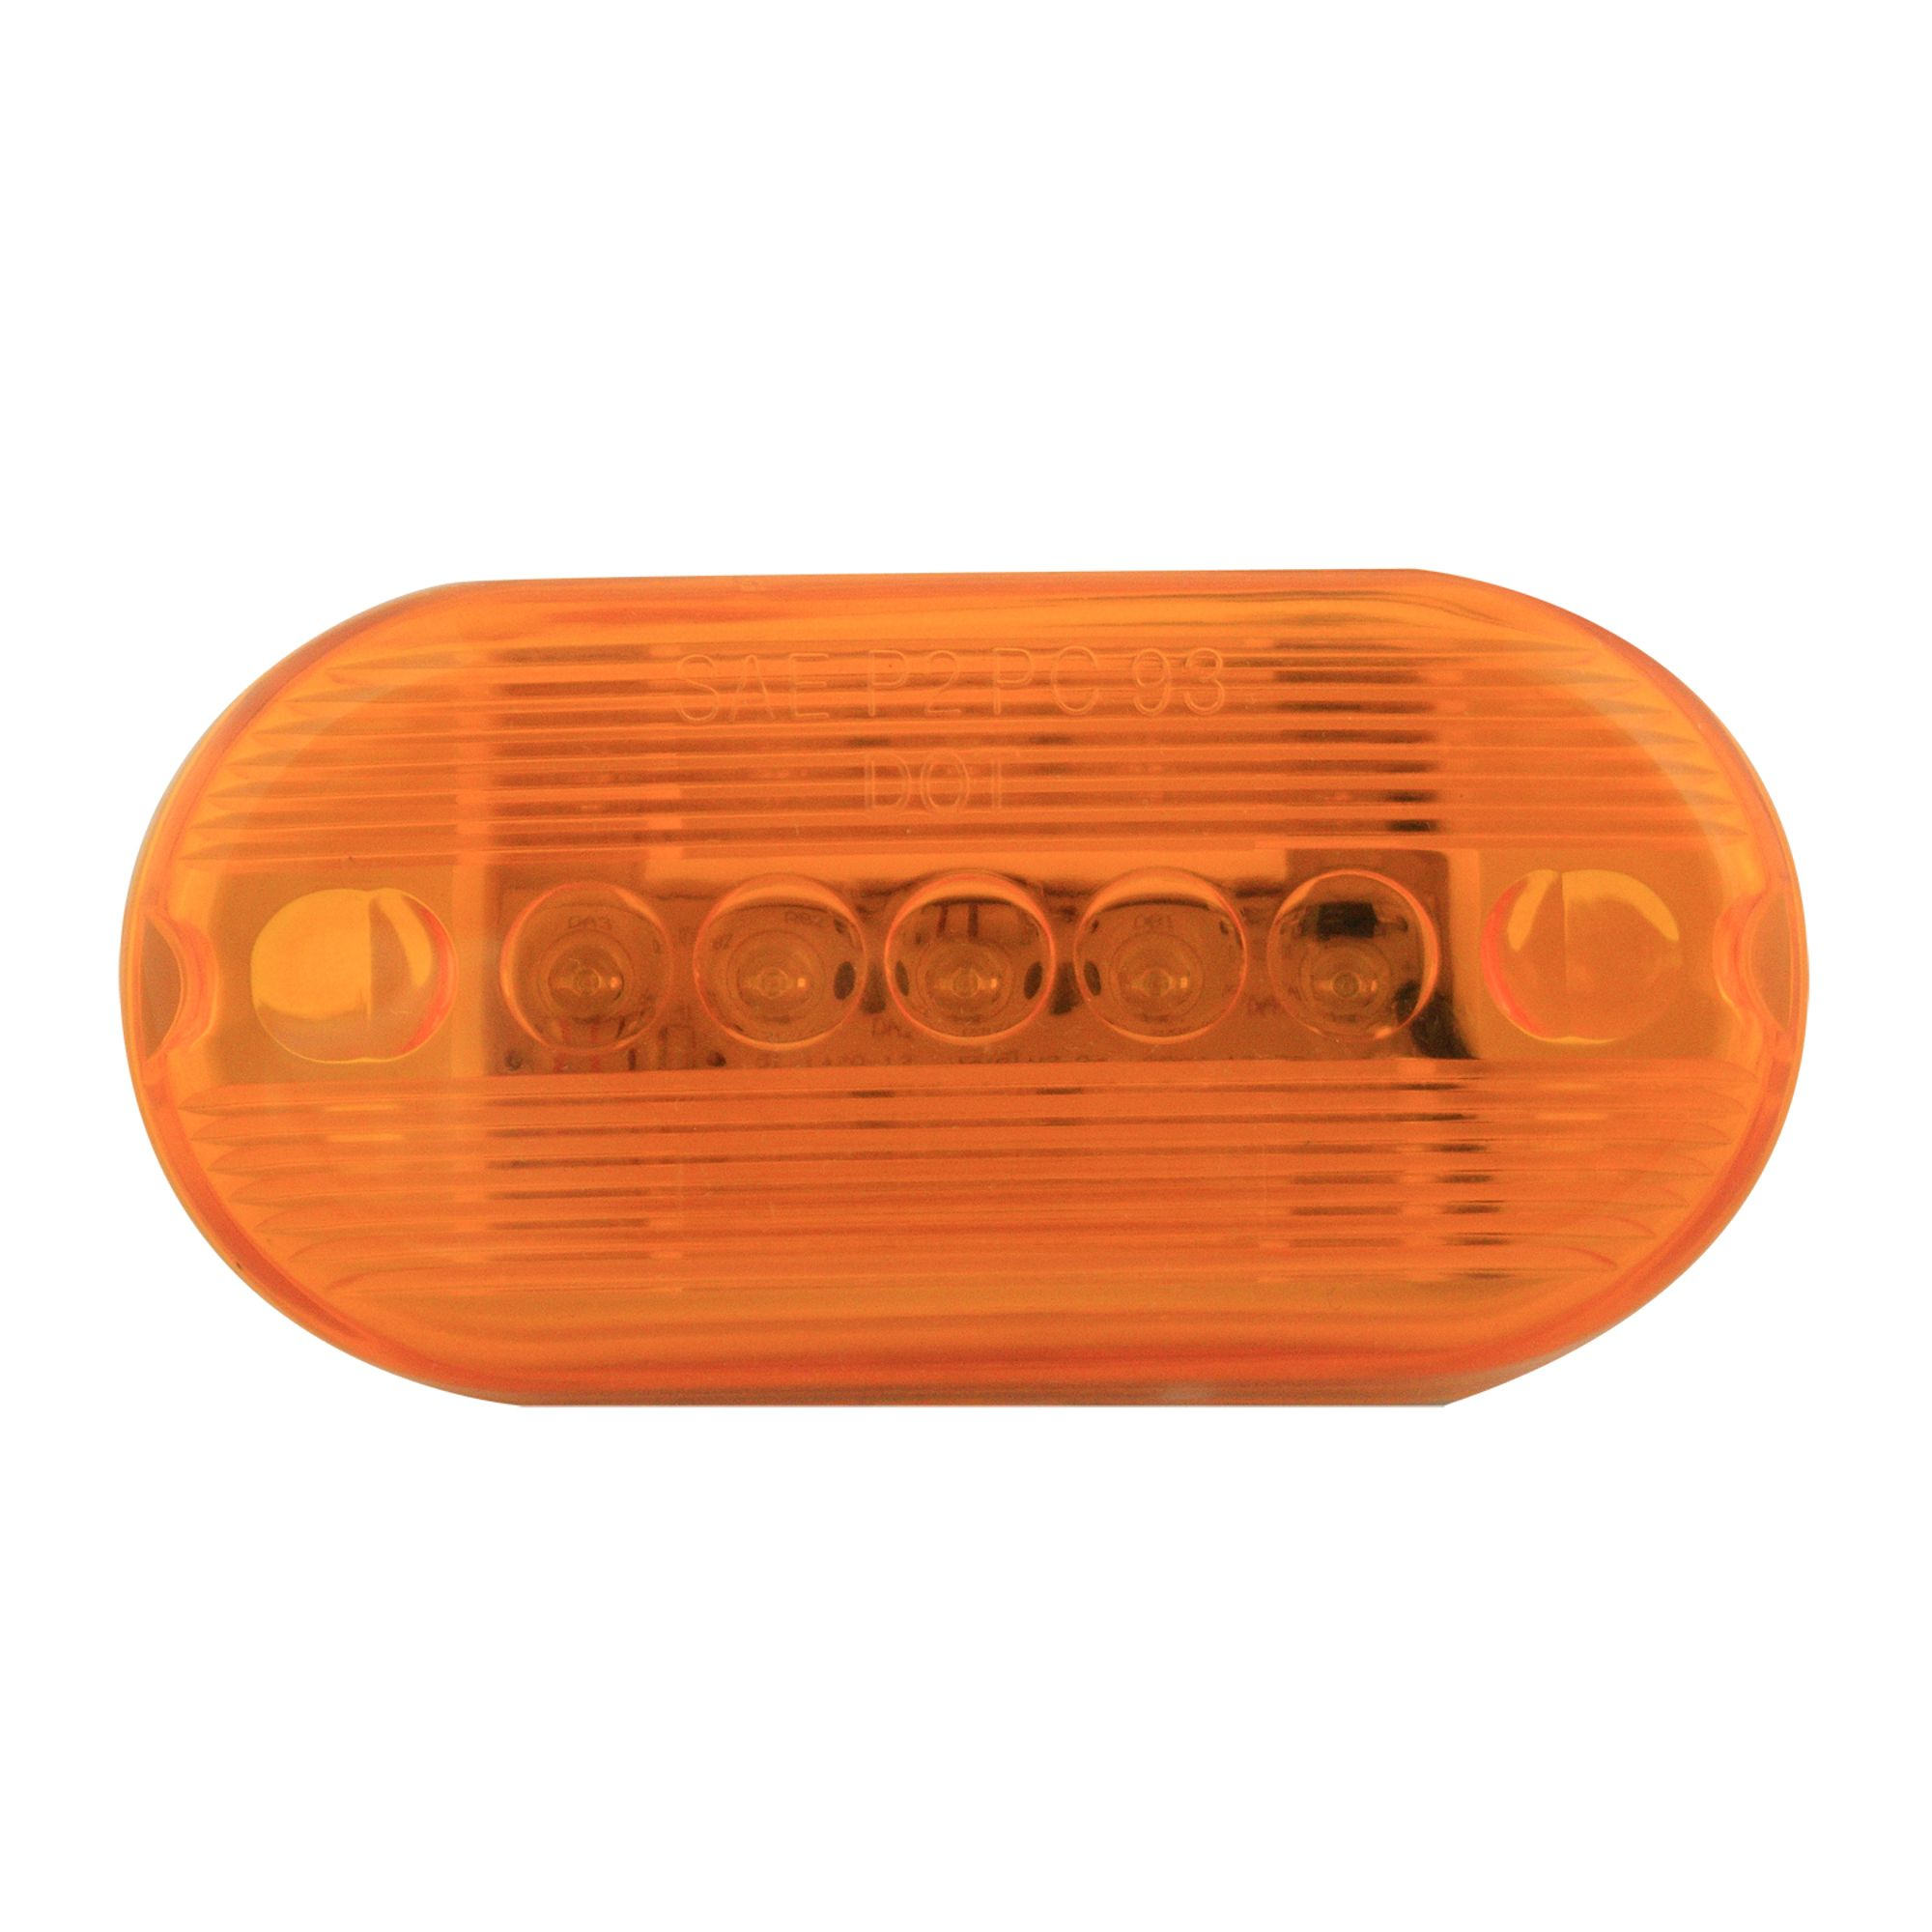 Pilot Automotive NV-5095A 12 Volt 4 inch Oblong Side Marker/Clearance Light-Amber Size: Size: 4 x 1-1/8 x 2